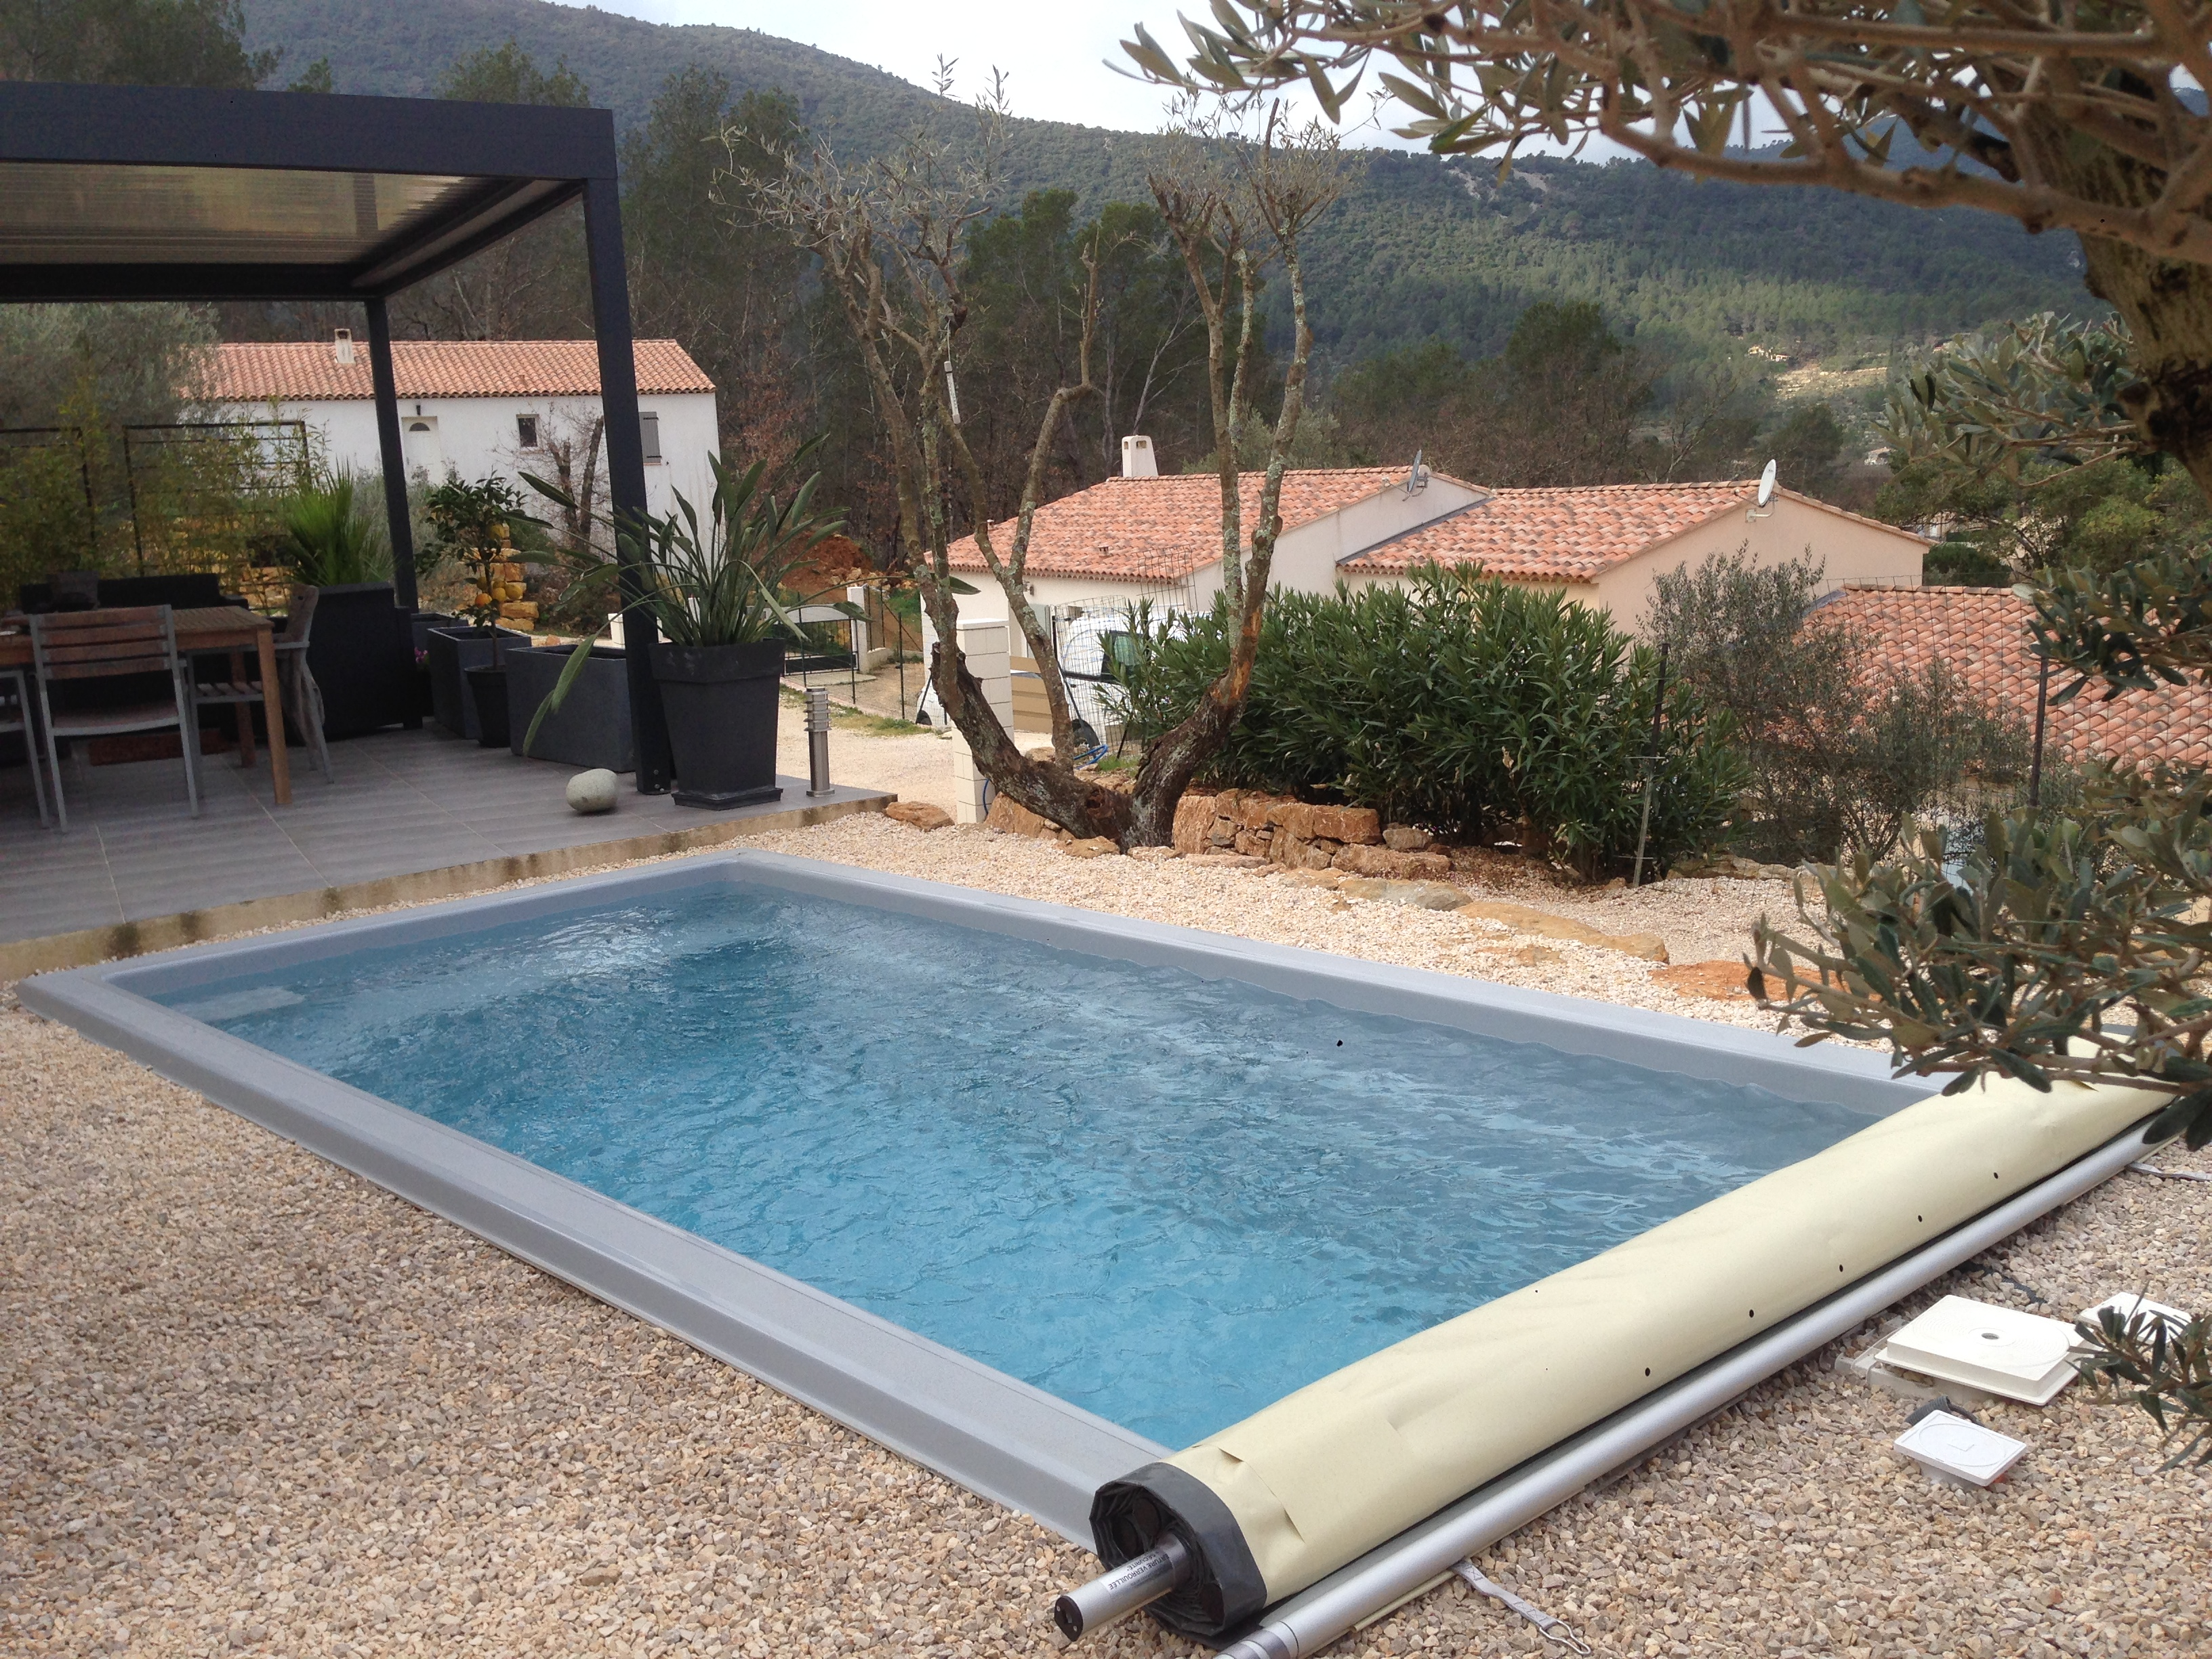 Mini piscine avec filtration traditionnelle nos piscines for Piscine sol amovible